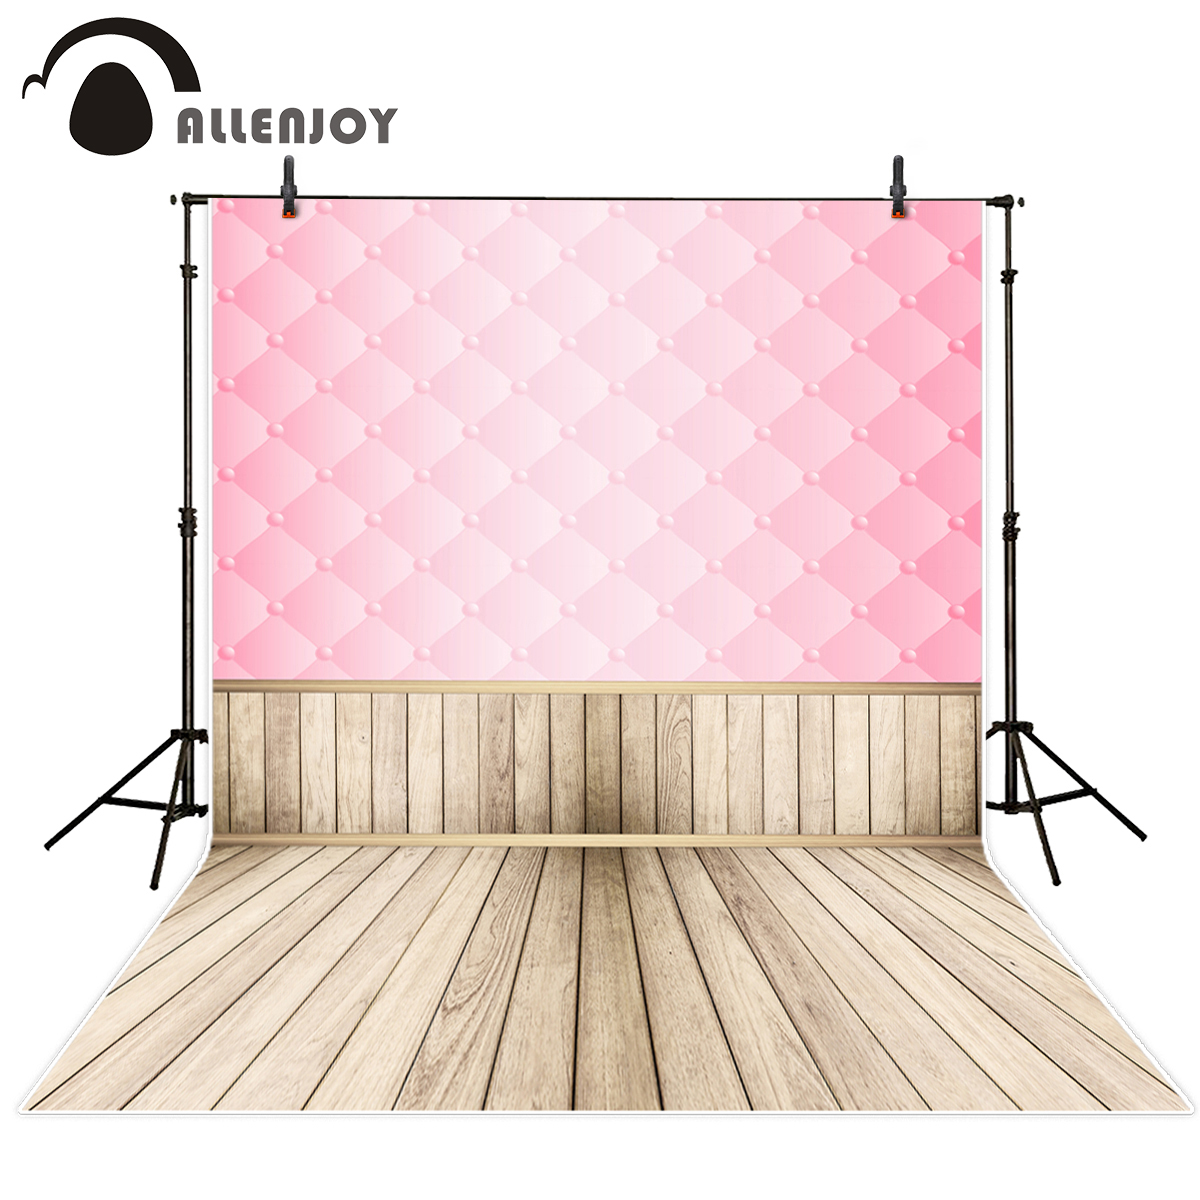 Allenjoy photography backdrops Pink headboard wooden board floor for children For a photo shoot the cloth photographic